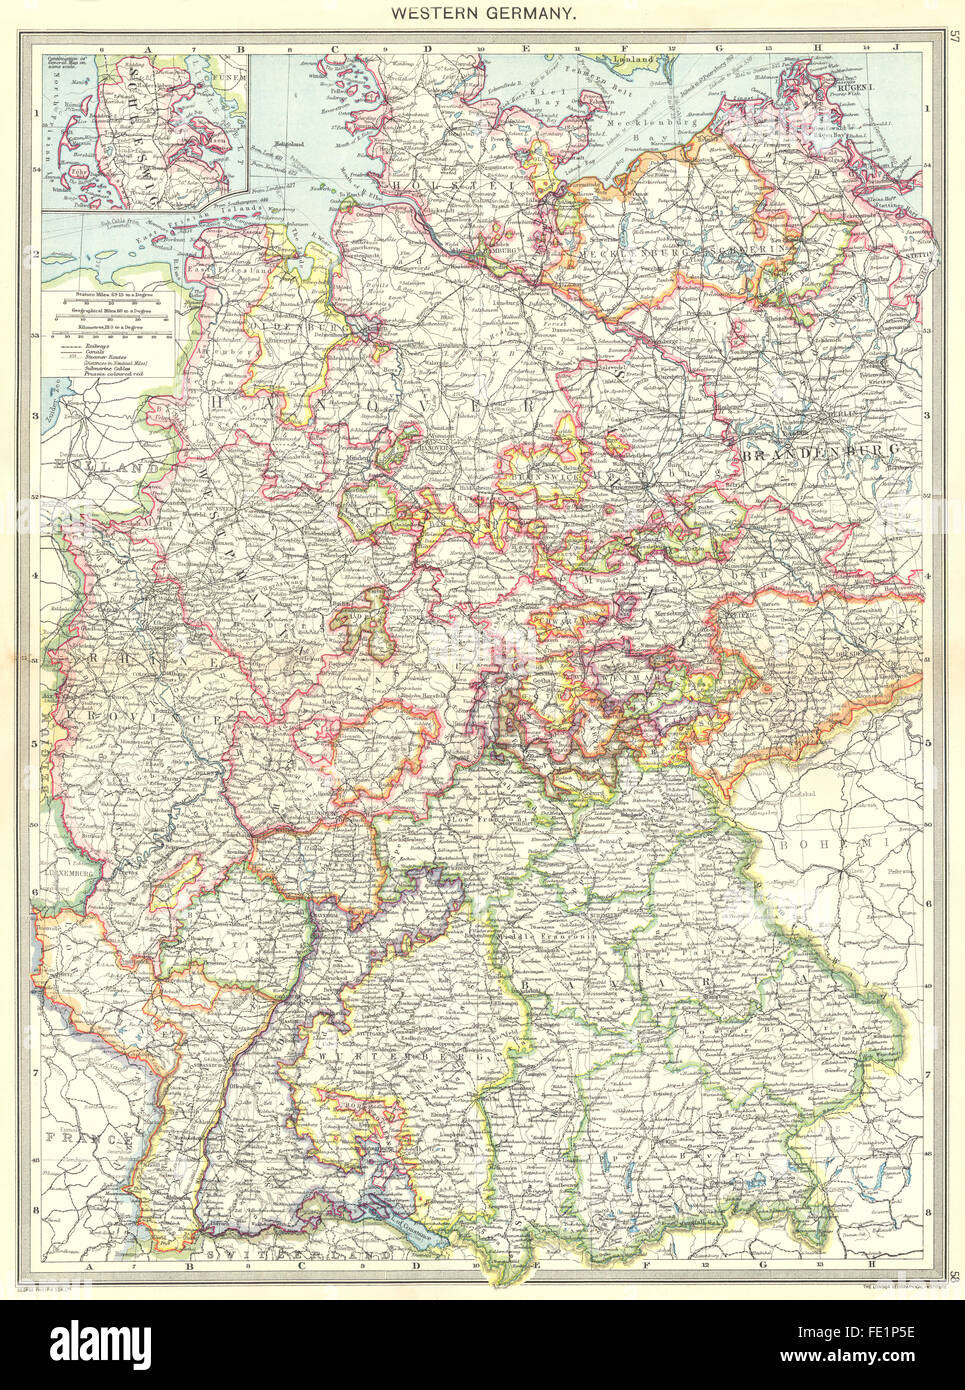 GERMANY Western Germany Inset map of Schleswig 1907 Stock Photo